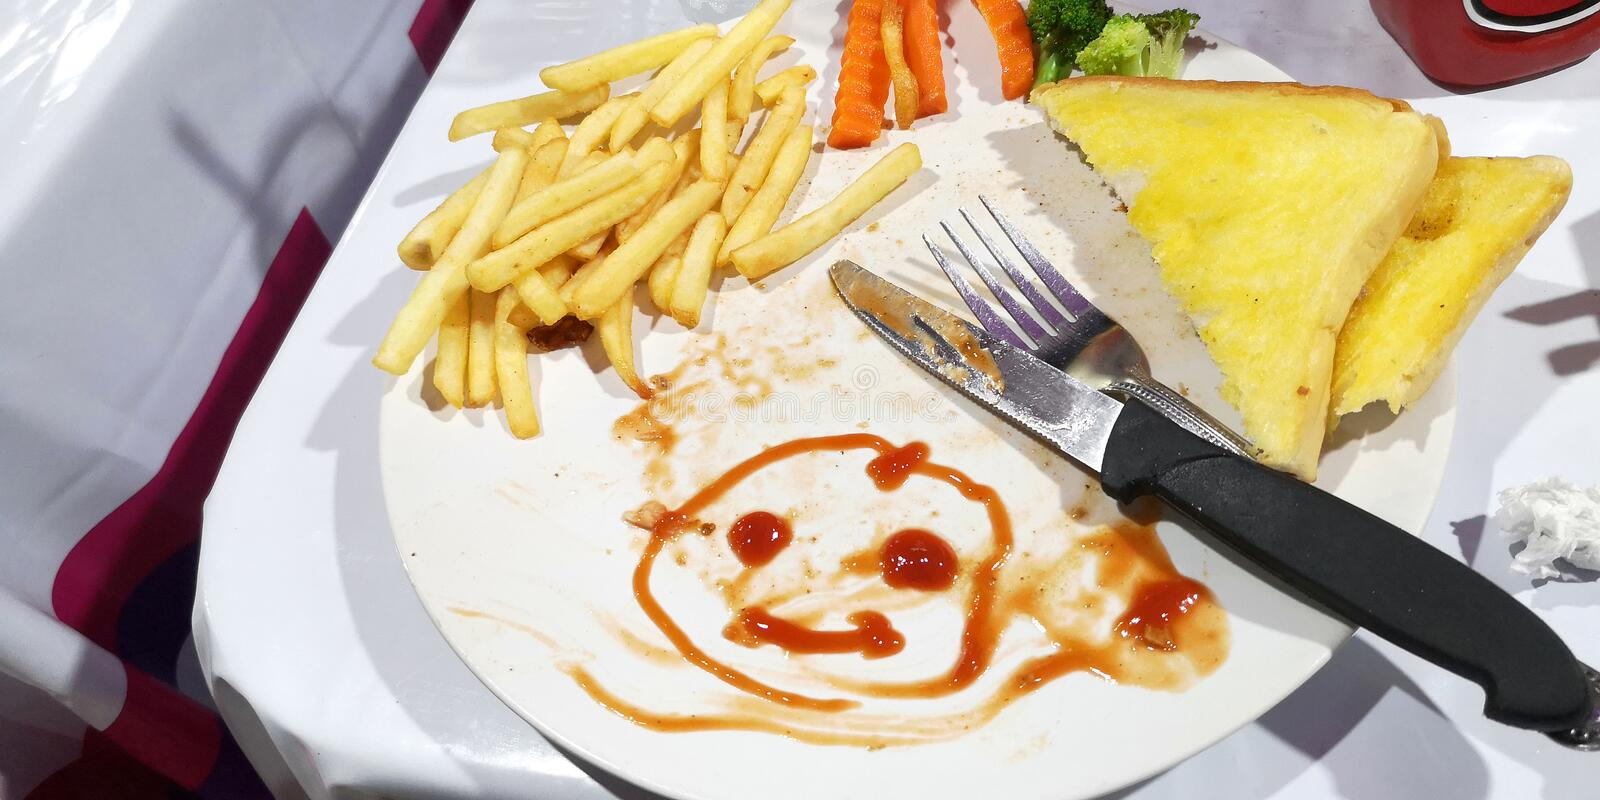 Breakfast or lunch the boy create to drawn tomato sauce cartoon smiling face on his plate white color. Breakfast or lunch the boy he create of art to drawing stock photos